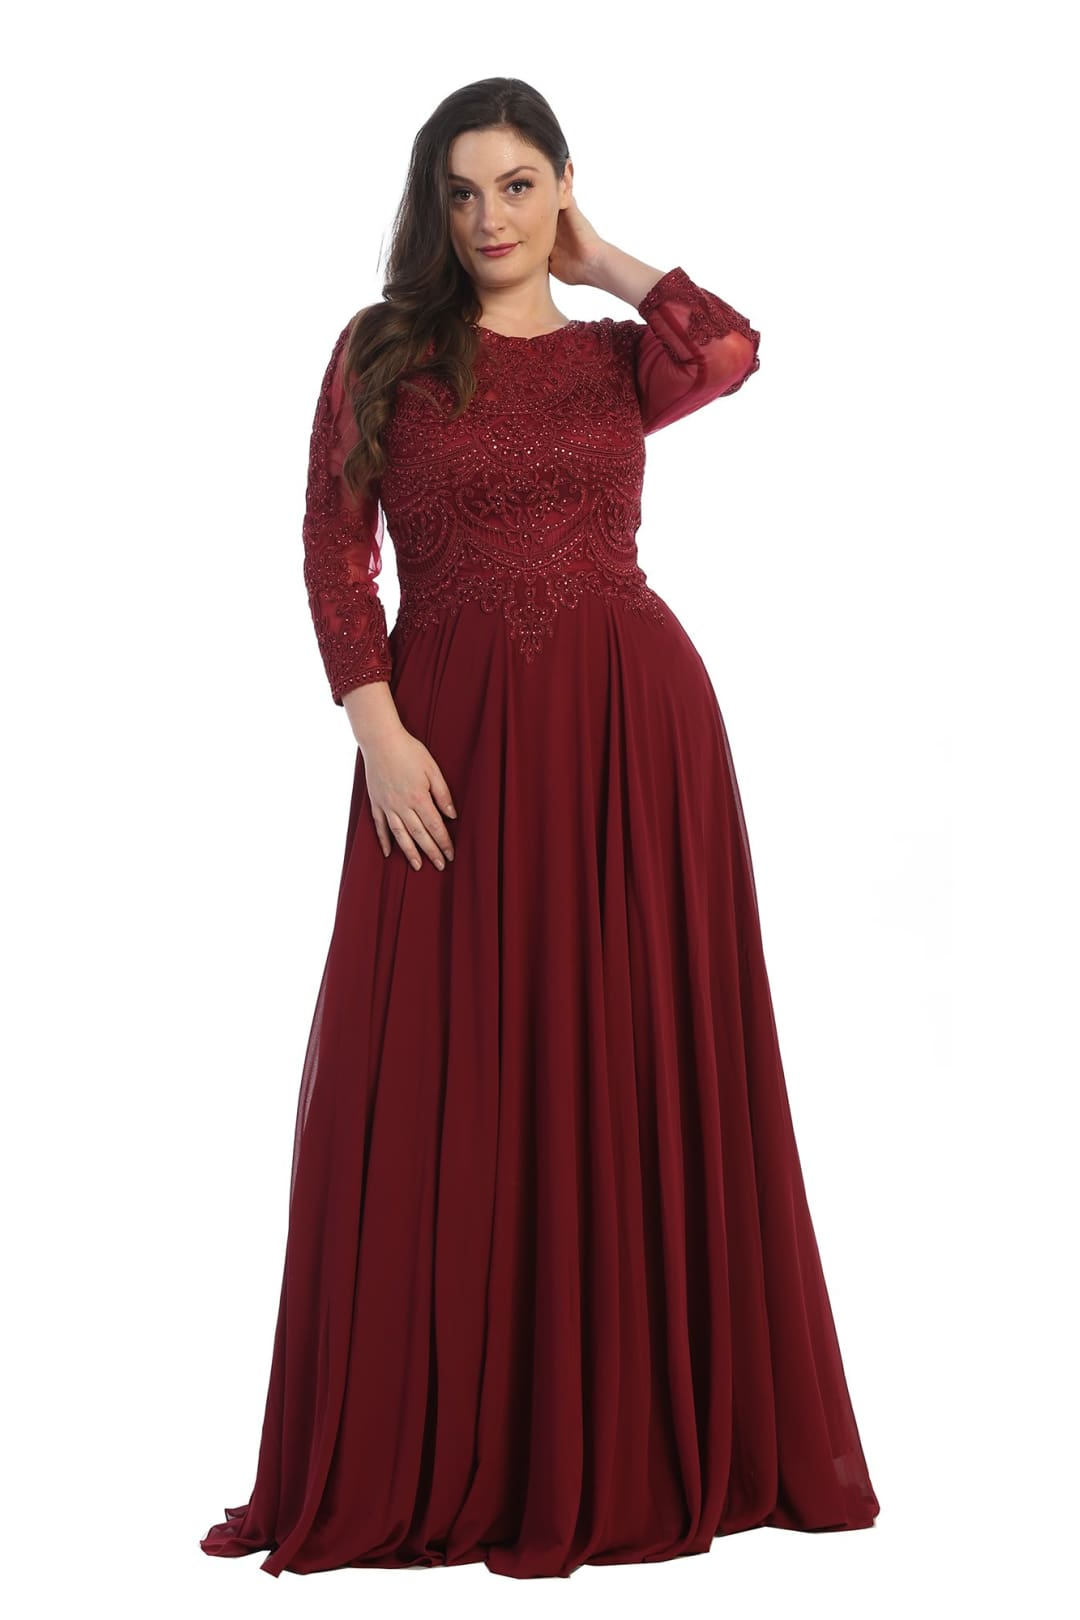 Classy Mother of the Bride Gown - Burgundy / XL